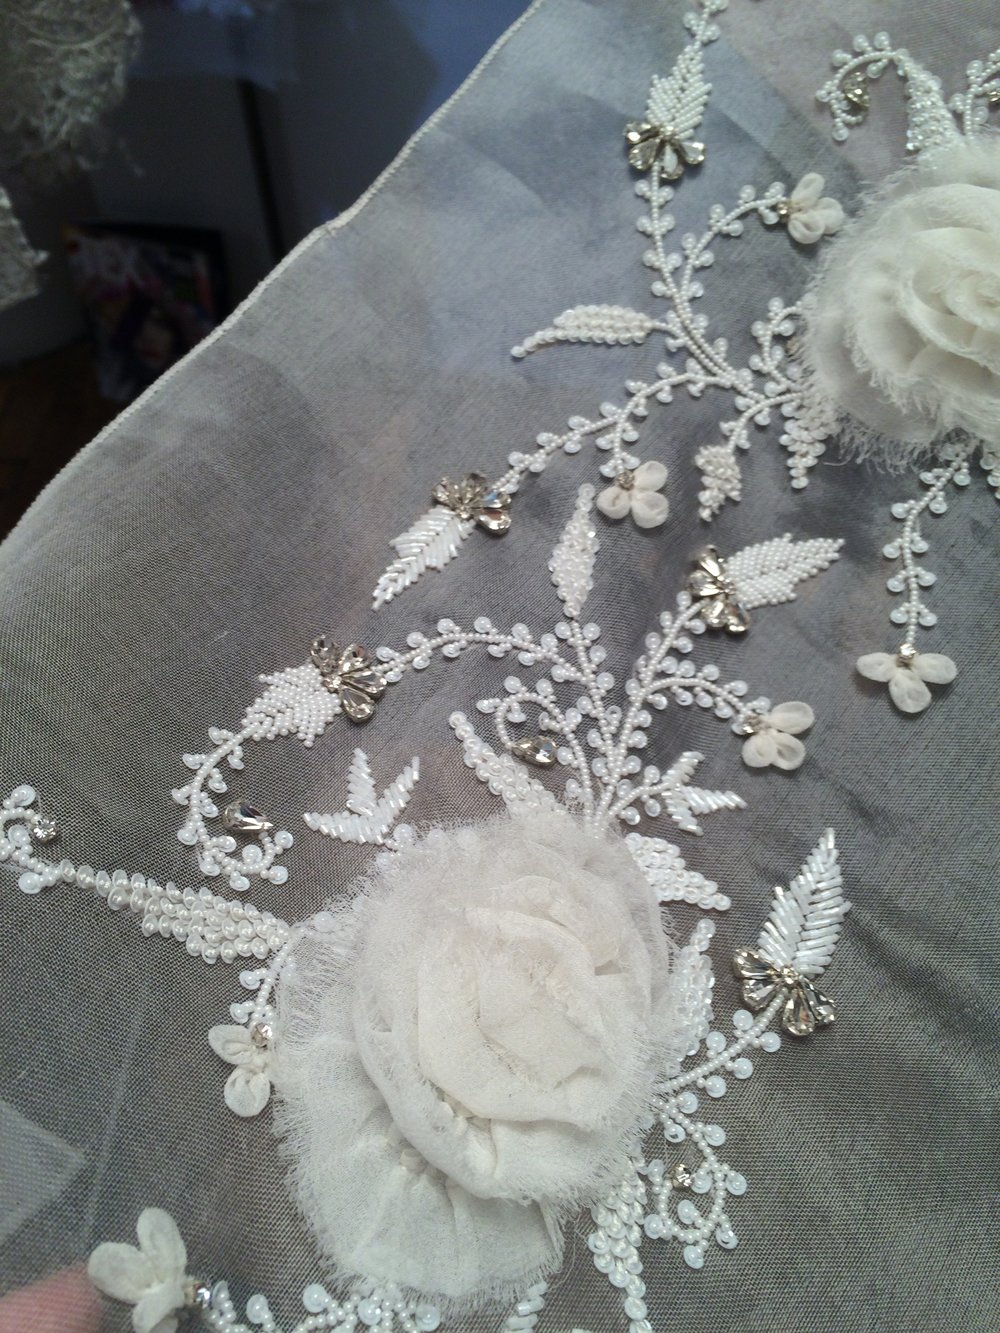 Three dimensional large scale flowers with beading and diamante detail